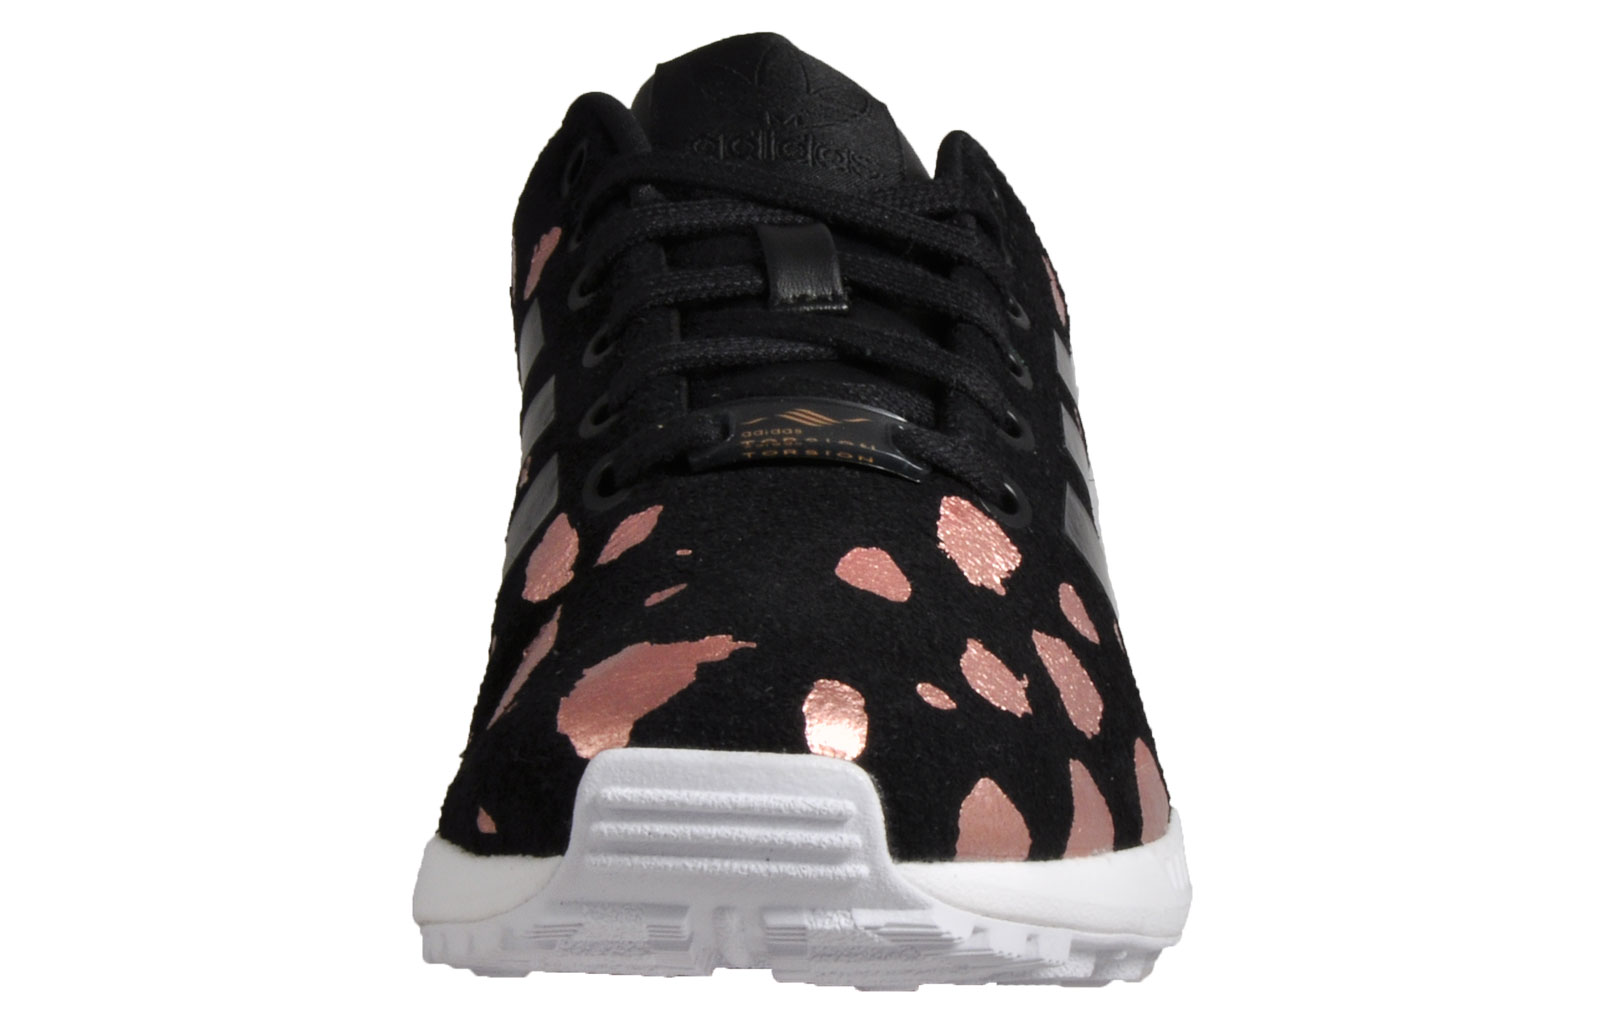 new style 8ed0a fc775 Adidas Originals ZX Flux Women s Classic Casual Retro Gym Trainers Black